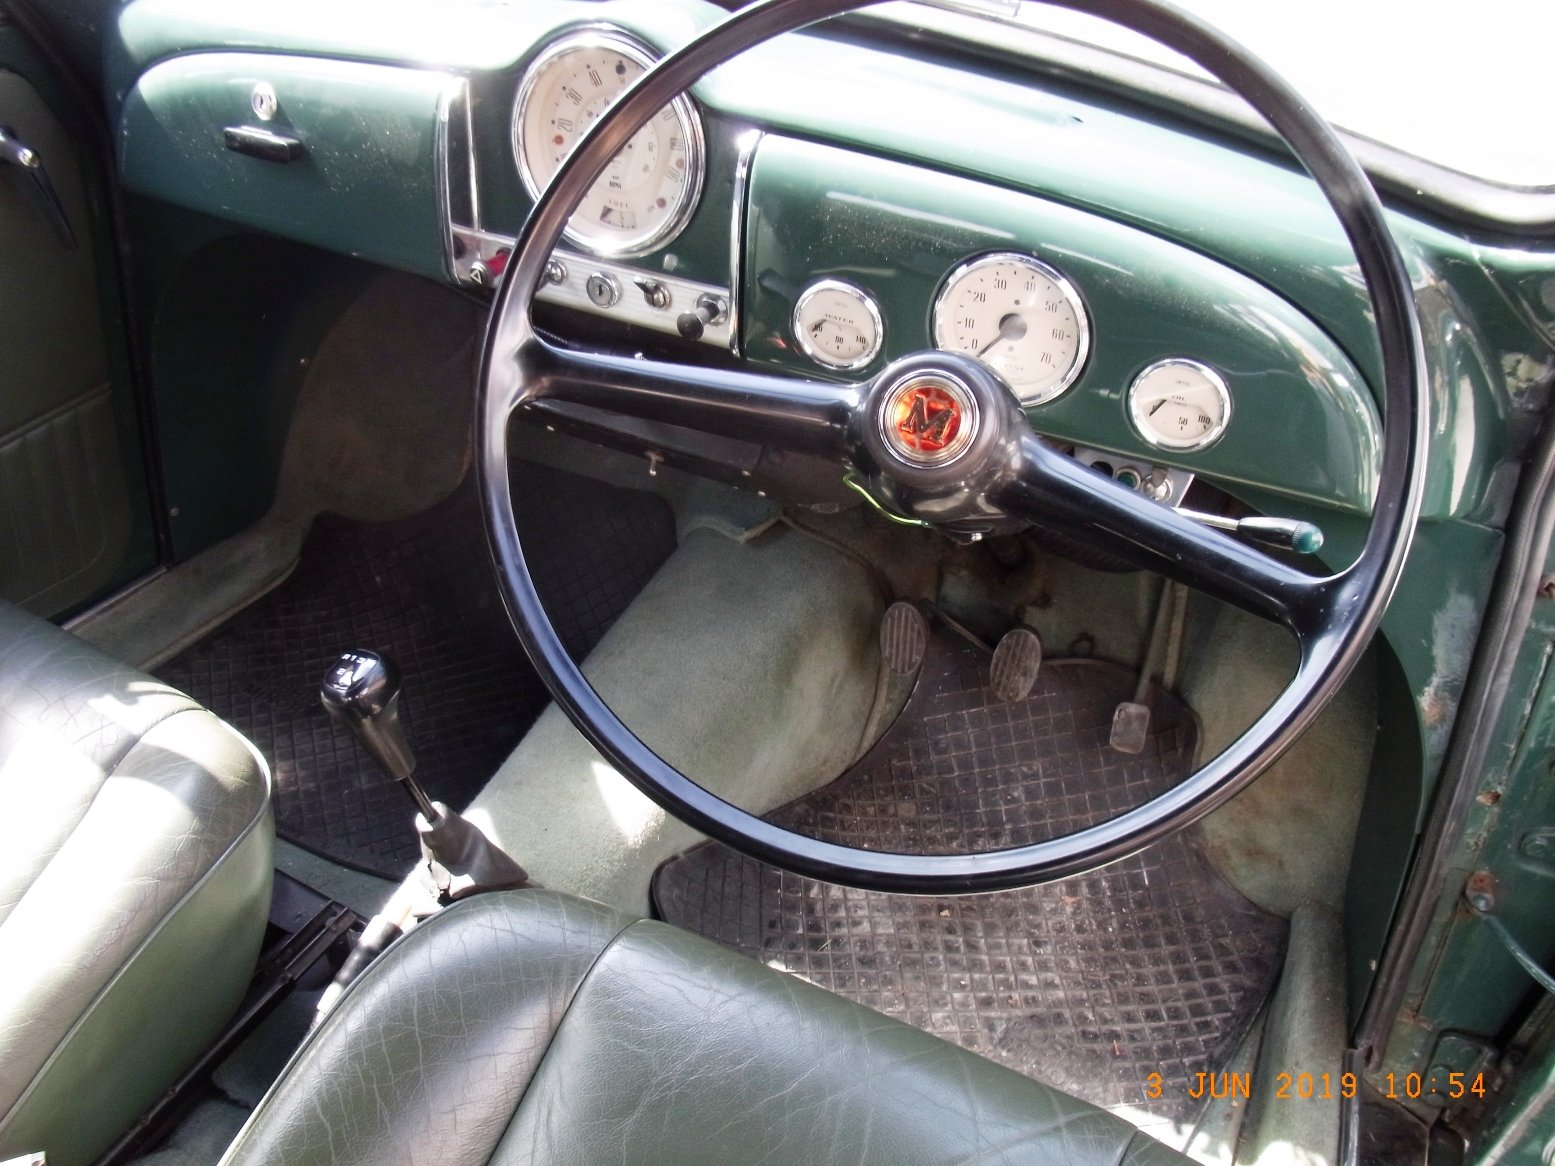 1968 Morris Minor Convertible (1275cc) For Sale (picture 4 of 6)